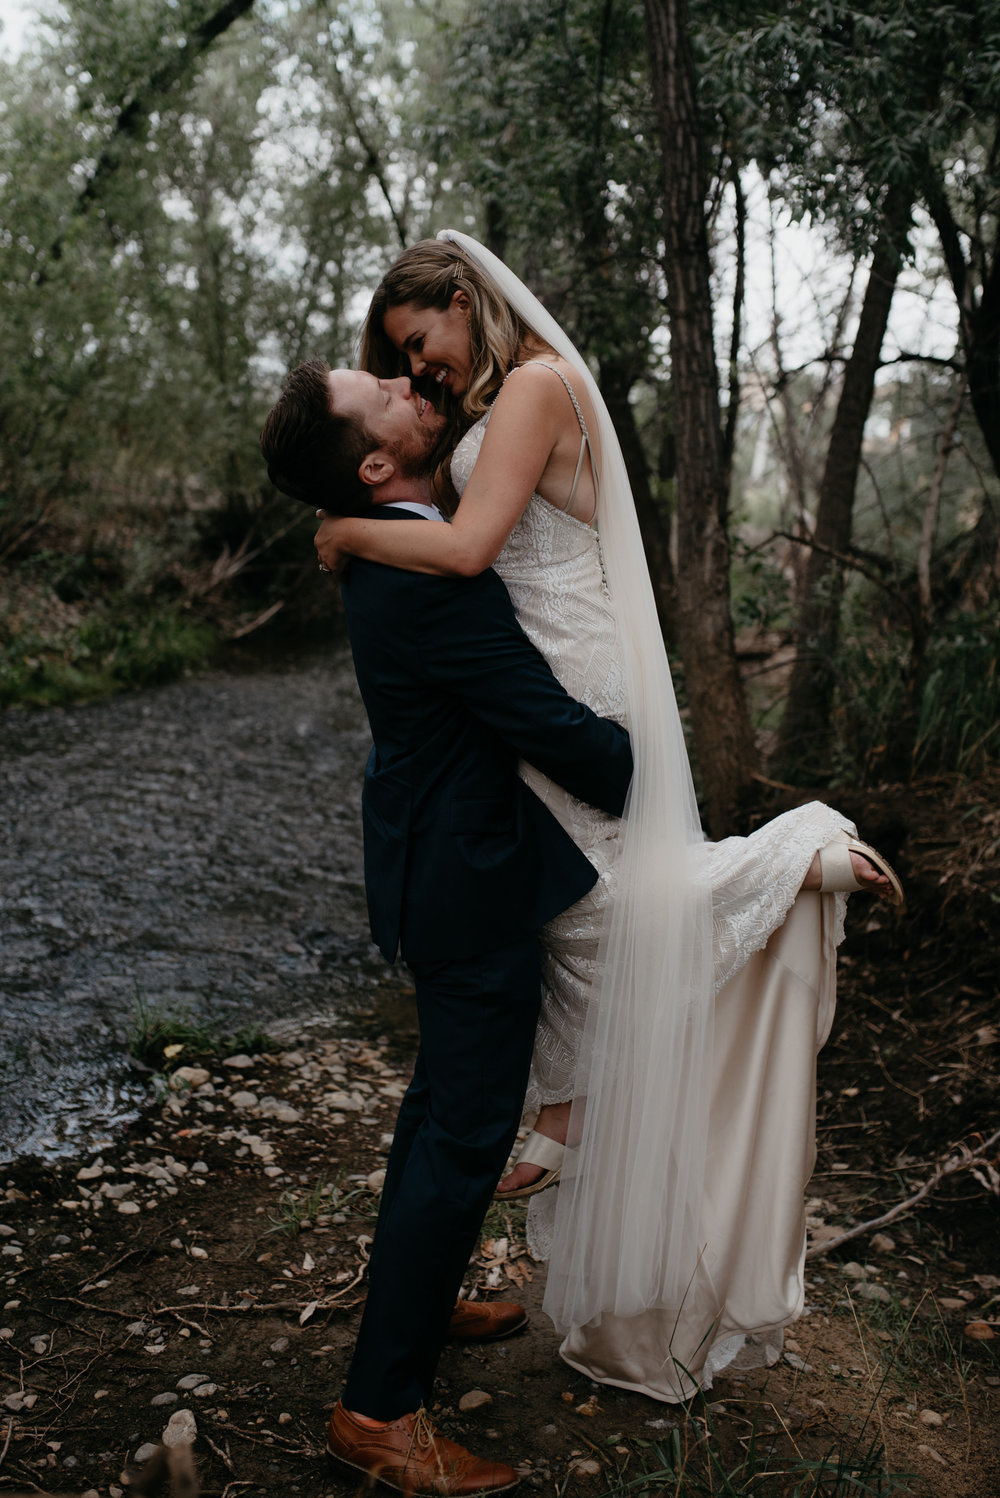 Colorado mountain wedding photographer. Denver, Colorado elopement photographer.